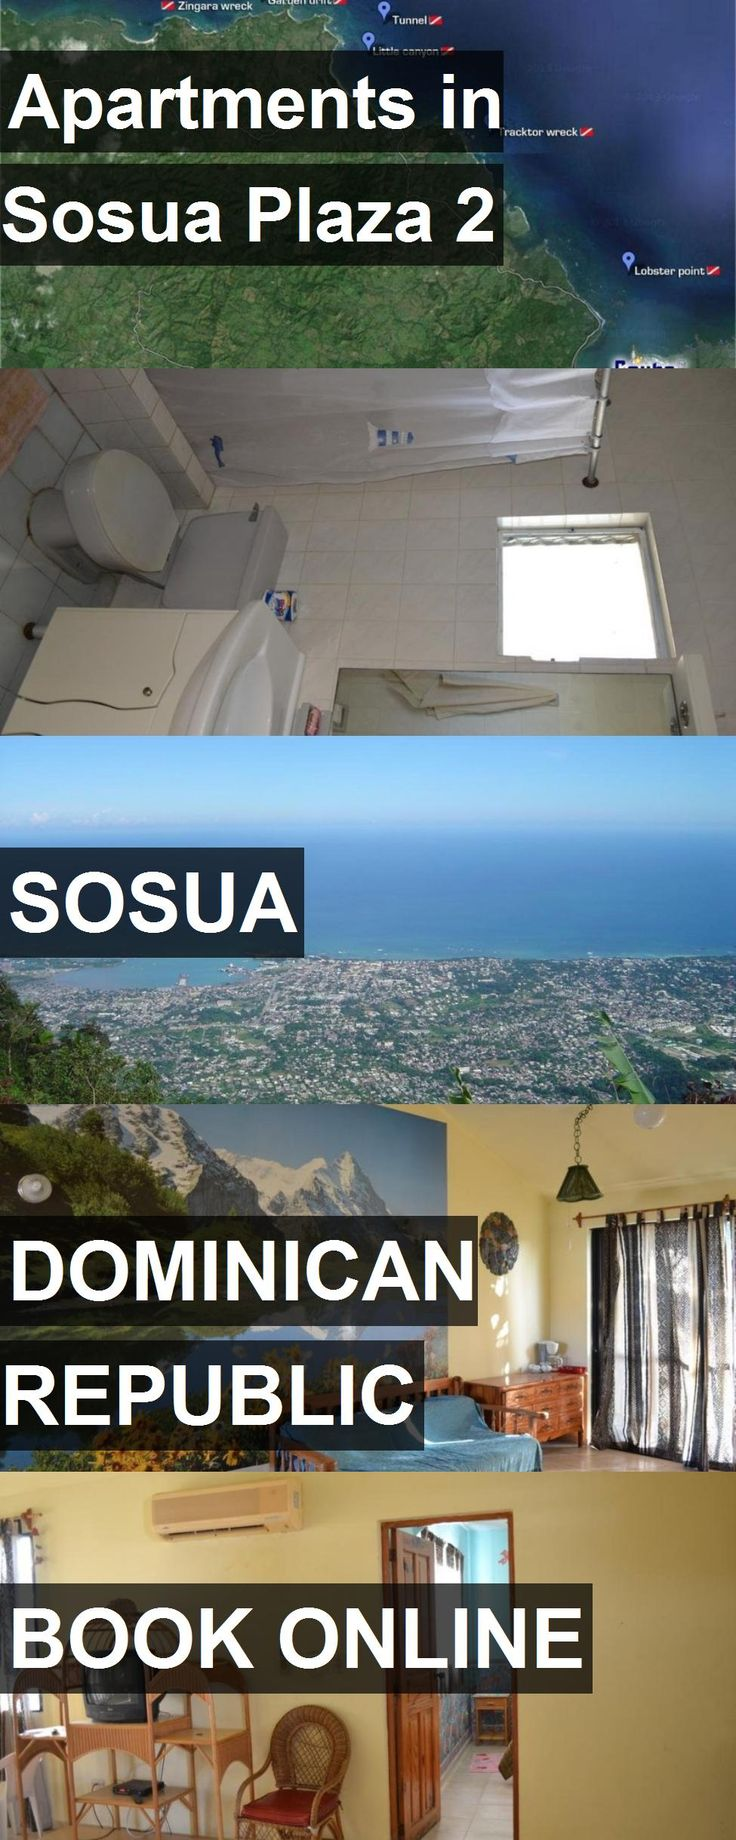 Hotel Apartments in Sosua Plaza 2 in Sosua, Dominican Republic. For more information, photos, reviews and best prices please follow the link. #DominicanRepublic #Sosua #ApartmentsinSosuaPlaza2 #hotel #travel #vacation